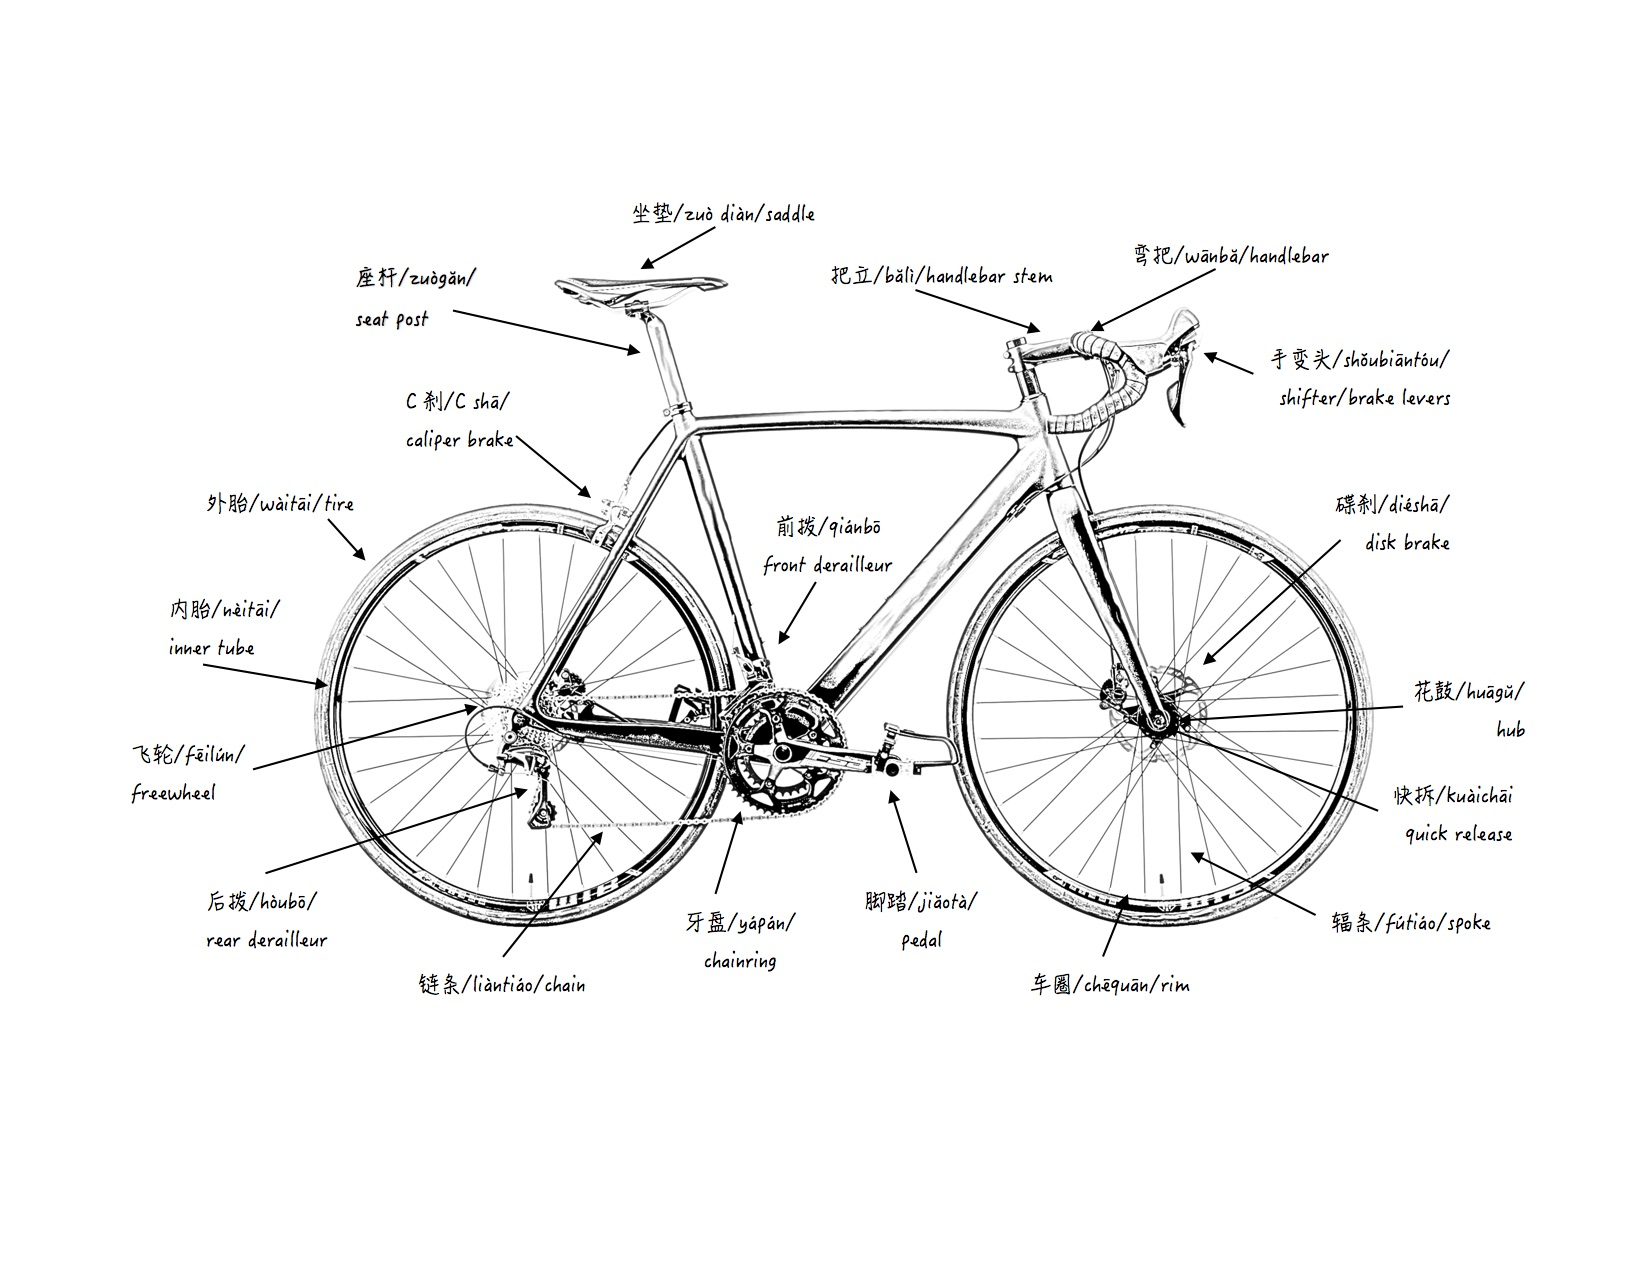 chinese bicycle parts diagram museum fatigue rh museumfatigue org diagram of a bicycle wheel diagram of a bicycle pedal